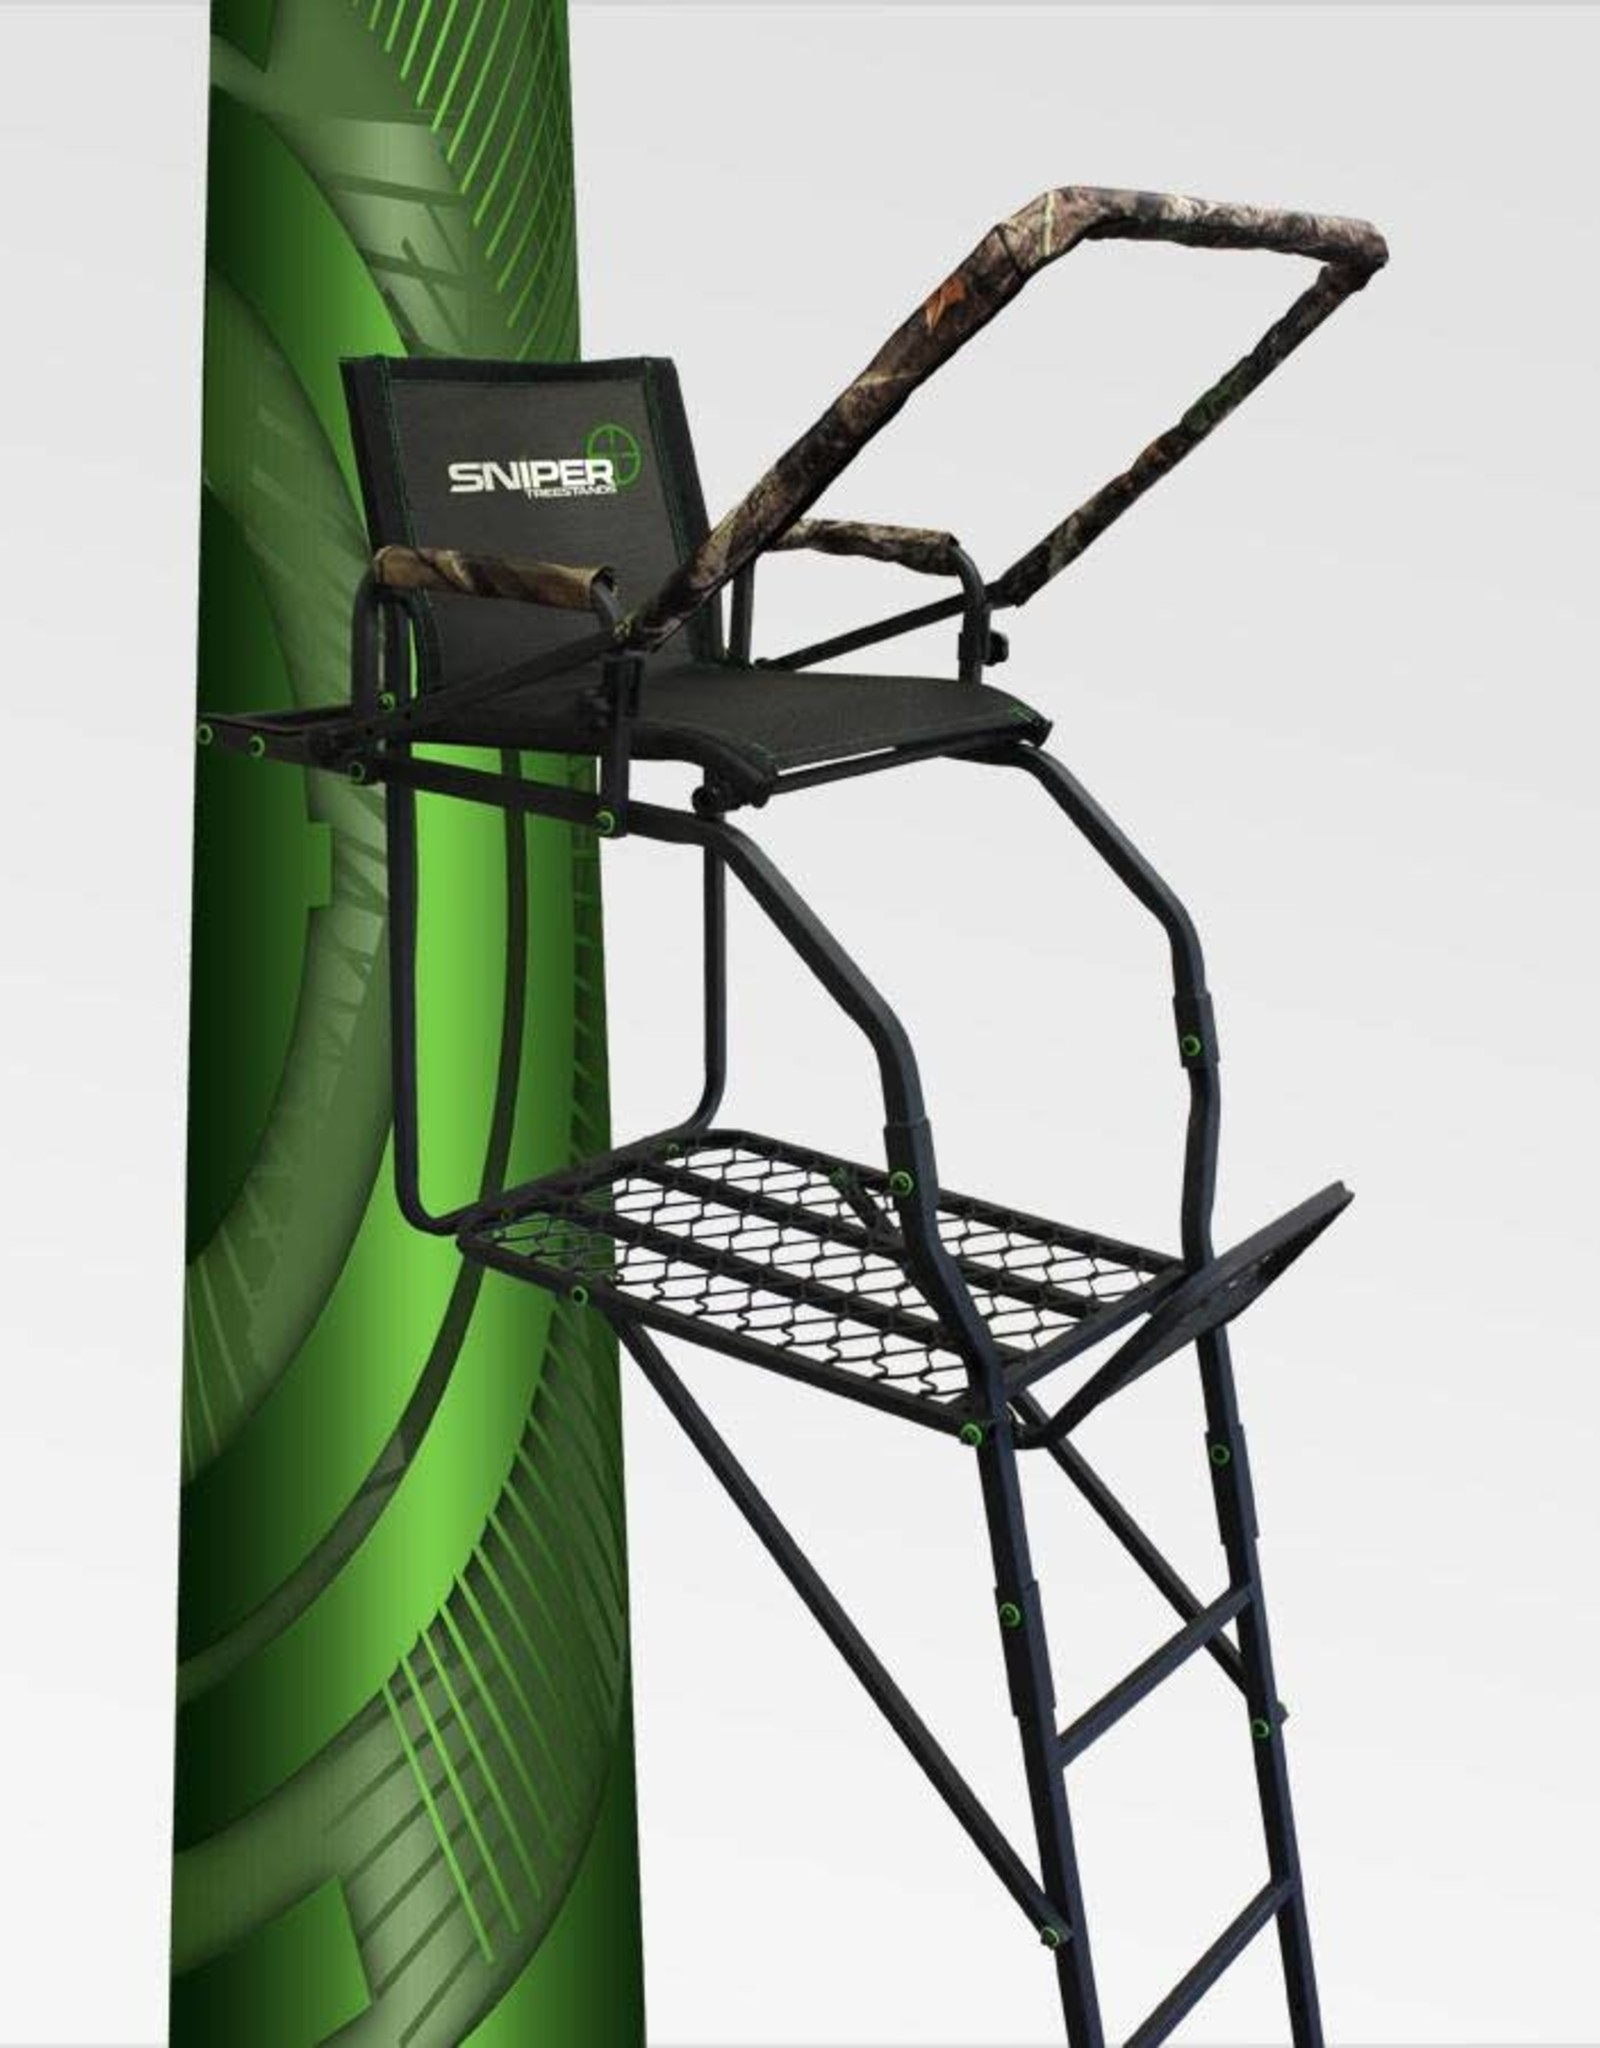 The Solitude 17 FT Ladder Stand